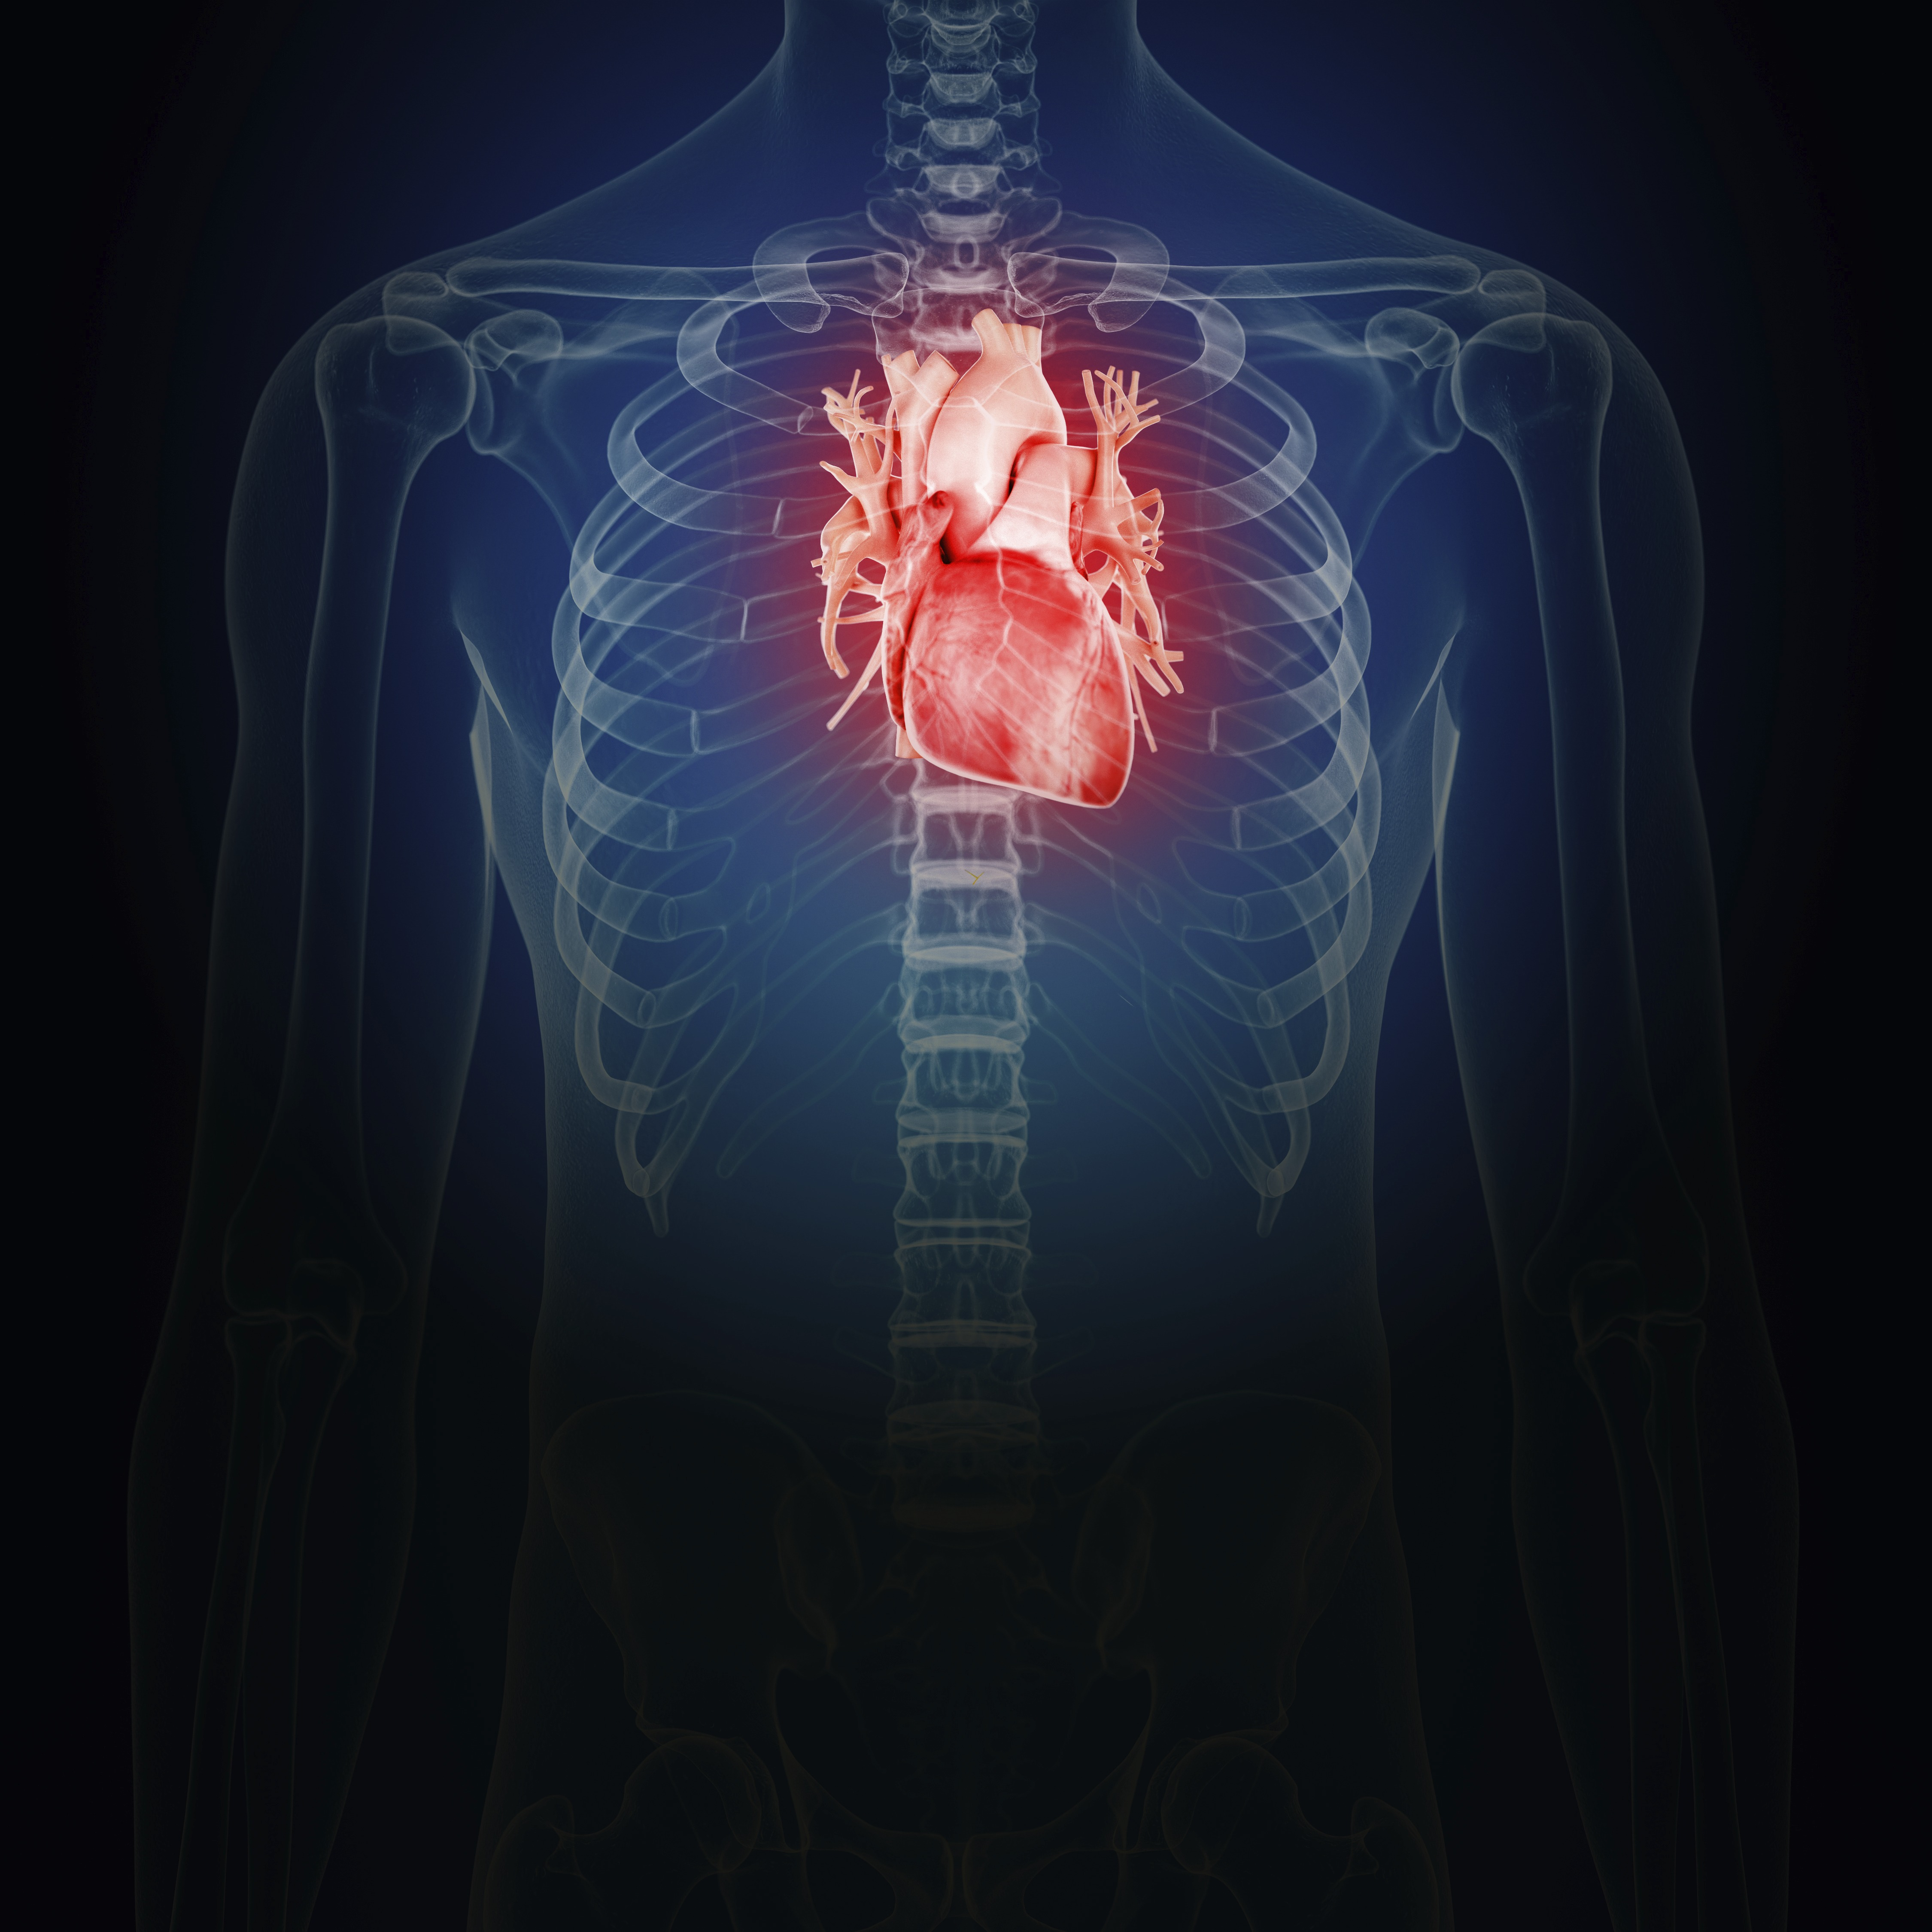 Embryonic microRNA Labeled as Fountain of Youth for Heart Cells